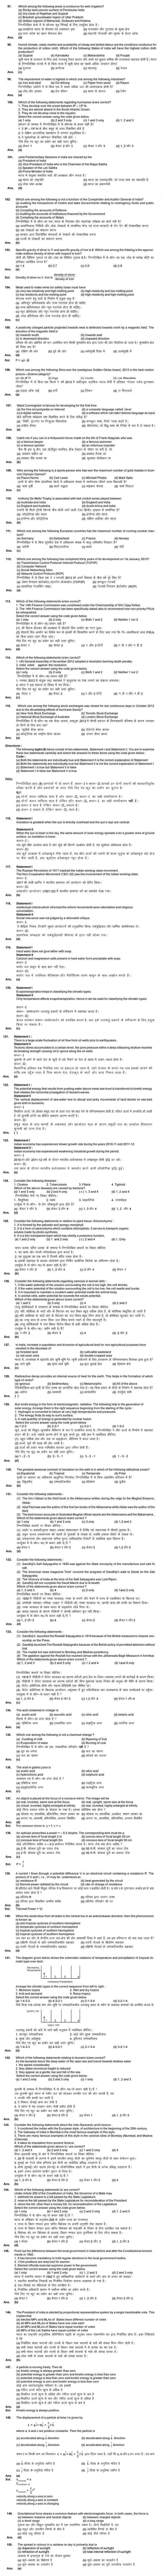 NDA & NA Exam (I) 2013 Solved Question Paper – General Ability Test Image by AglaSem